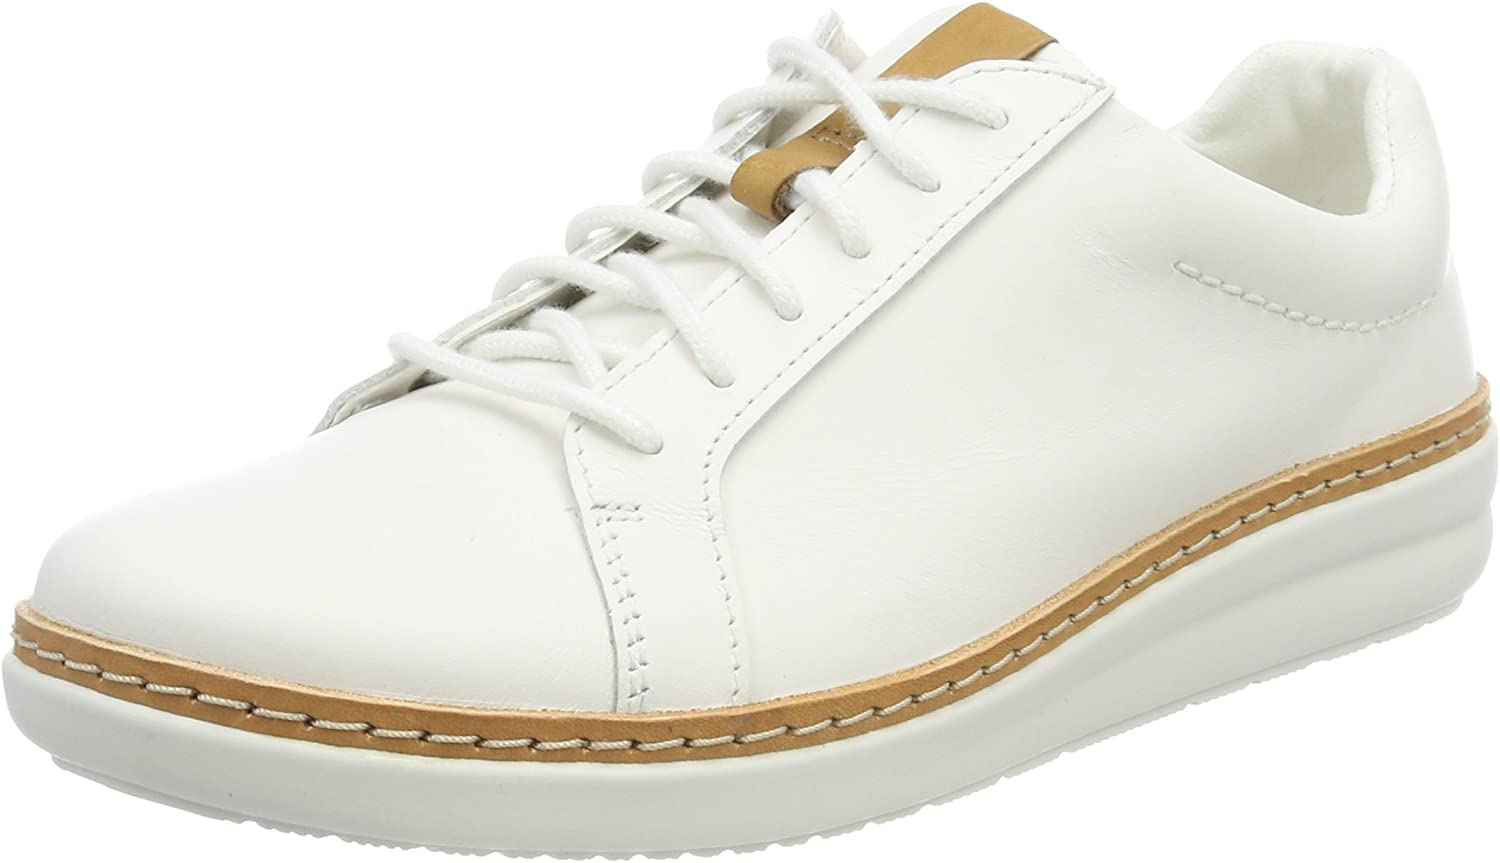 Clarks - Amberlee pink - 26132659 - color  White - Size  10.0